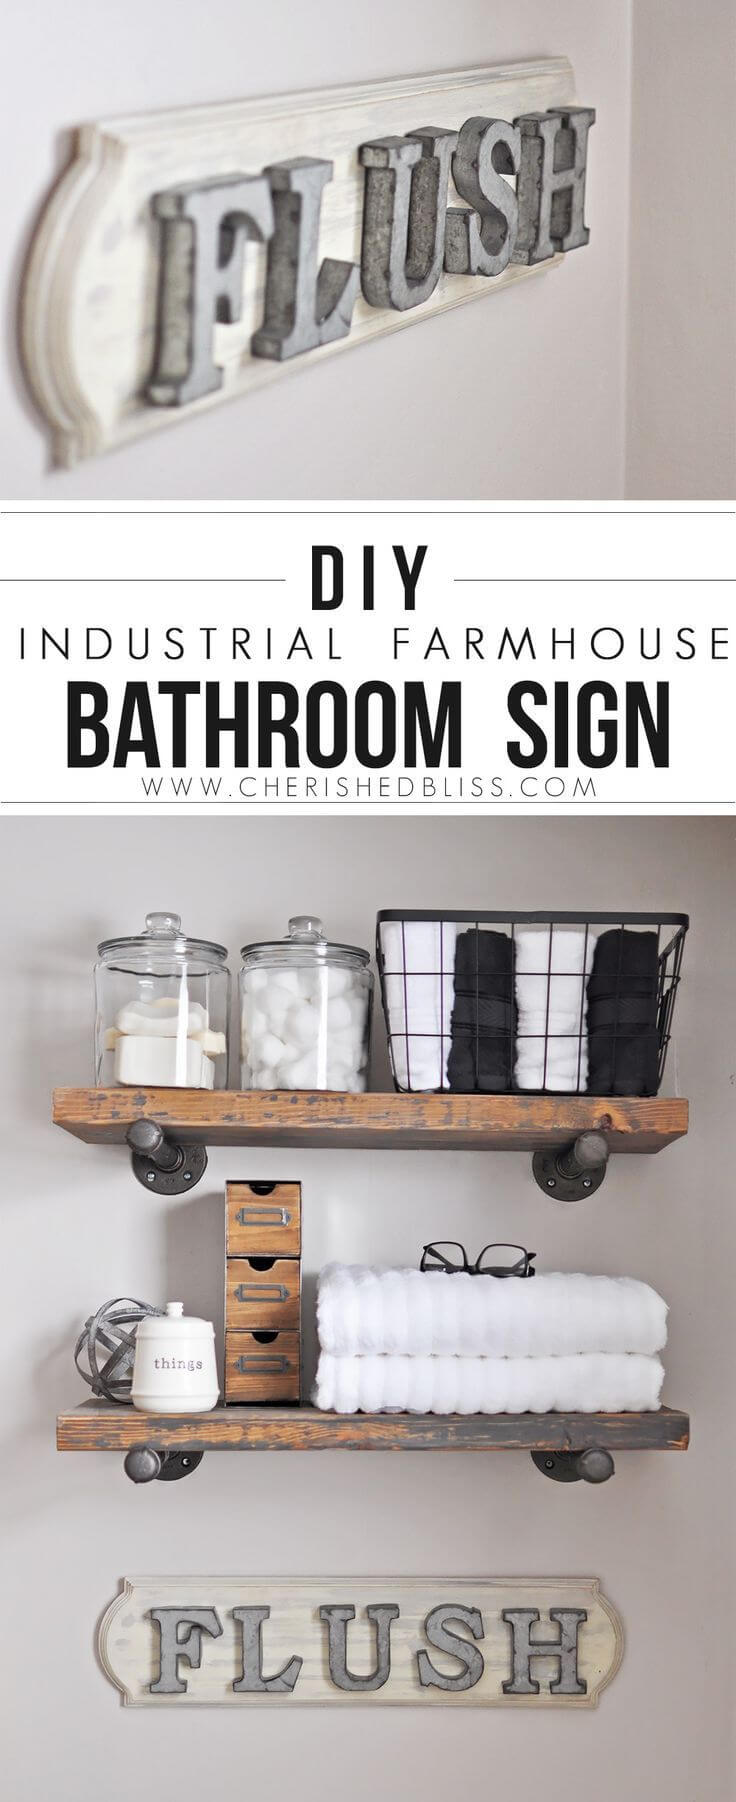 DIY Farmhouse Bathroom U201cFlushu201d Sign